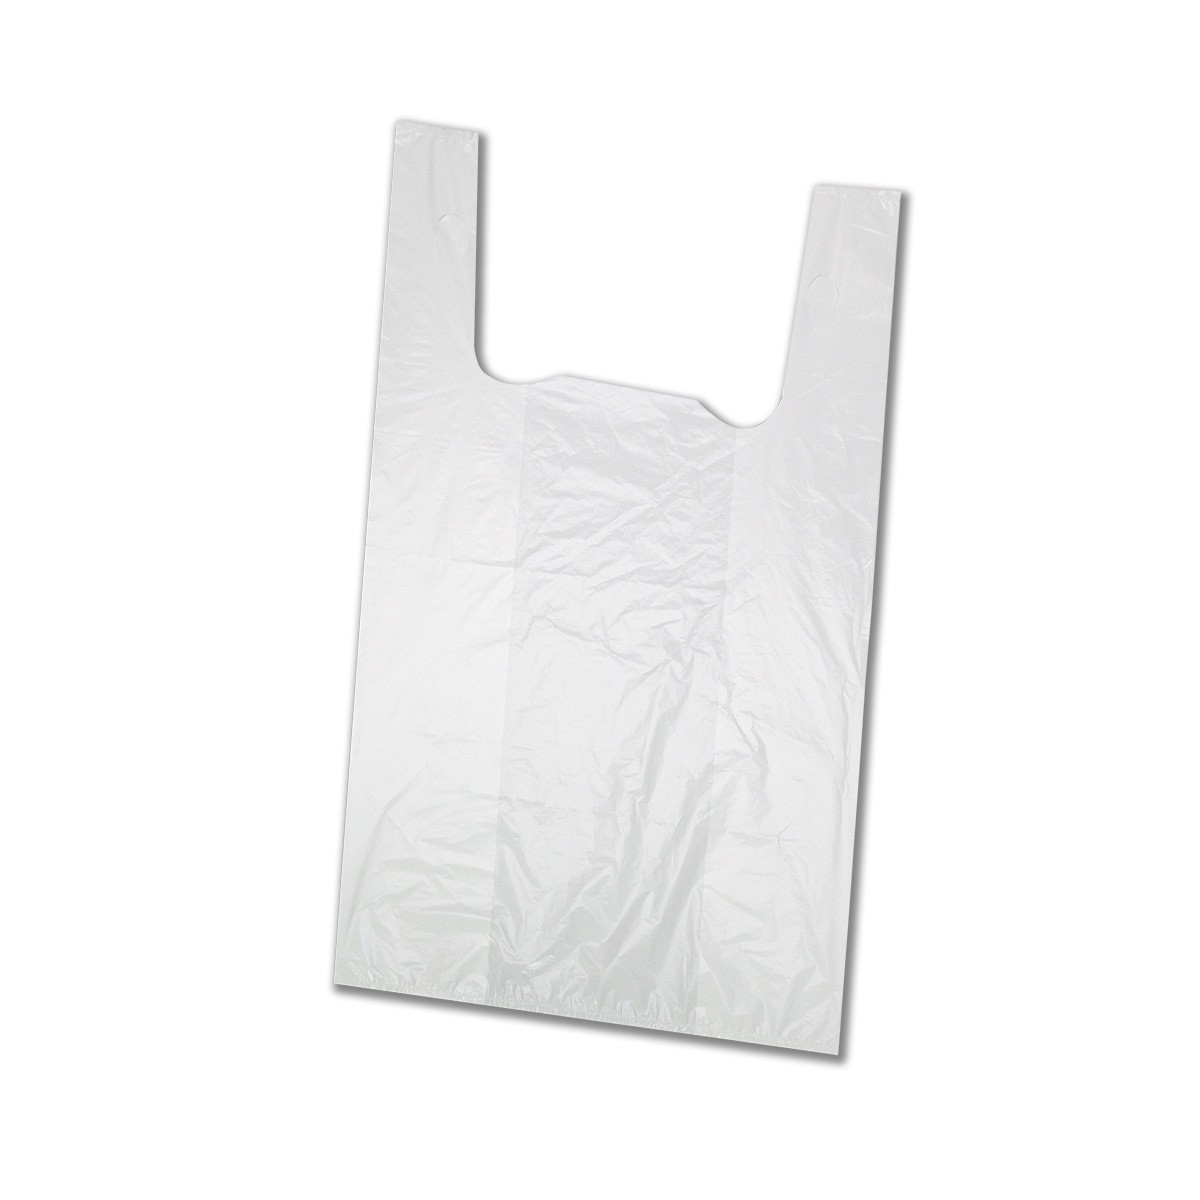 Biodegradable Large T-Shirt HDPE Plastic Bags 56x28+14cm (35Mic) | 20kgs